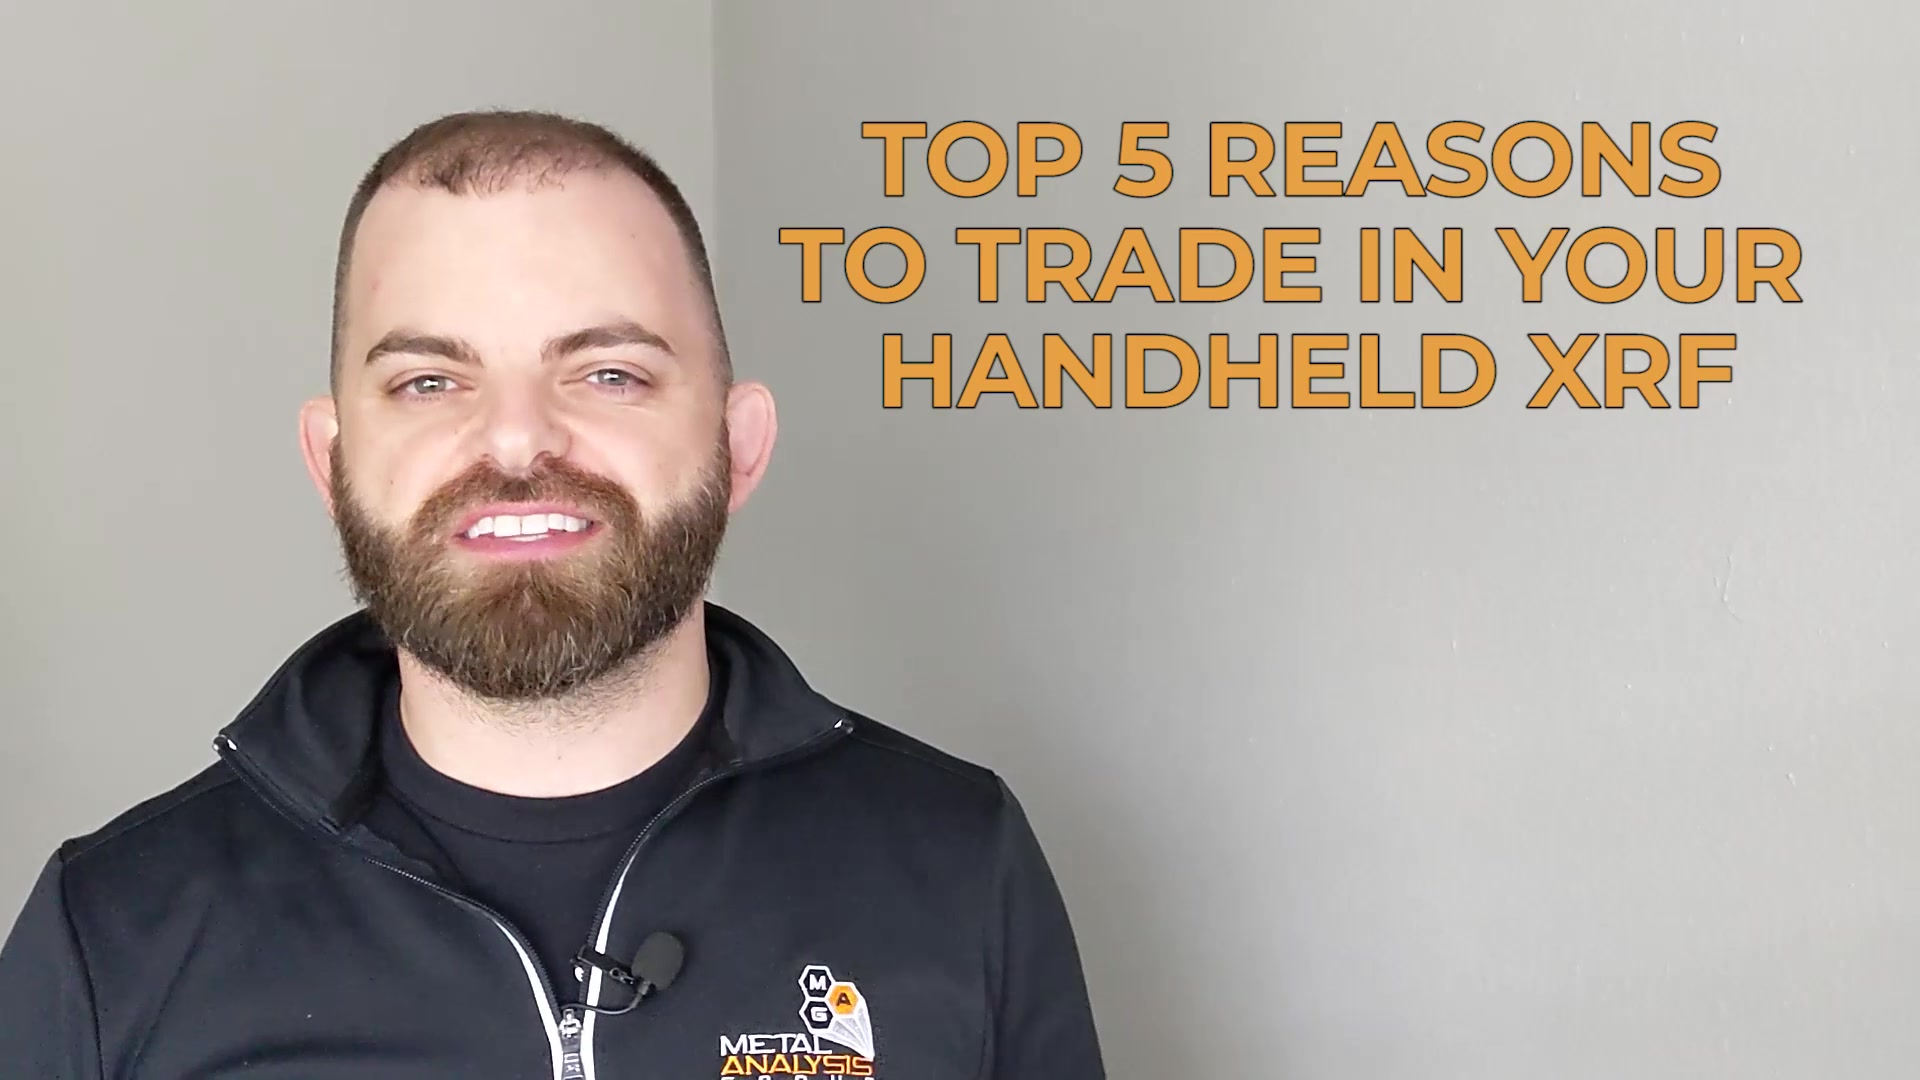 Top 5 Reasons to Trade-in Your Handheld XRF